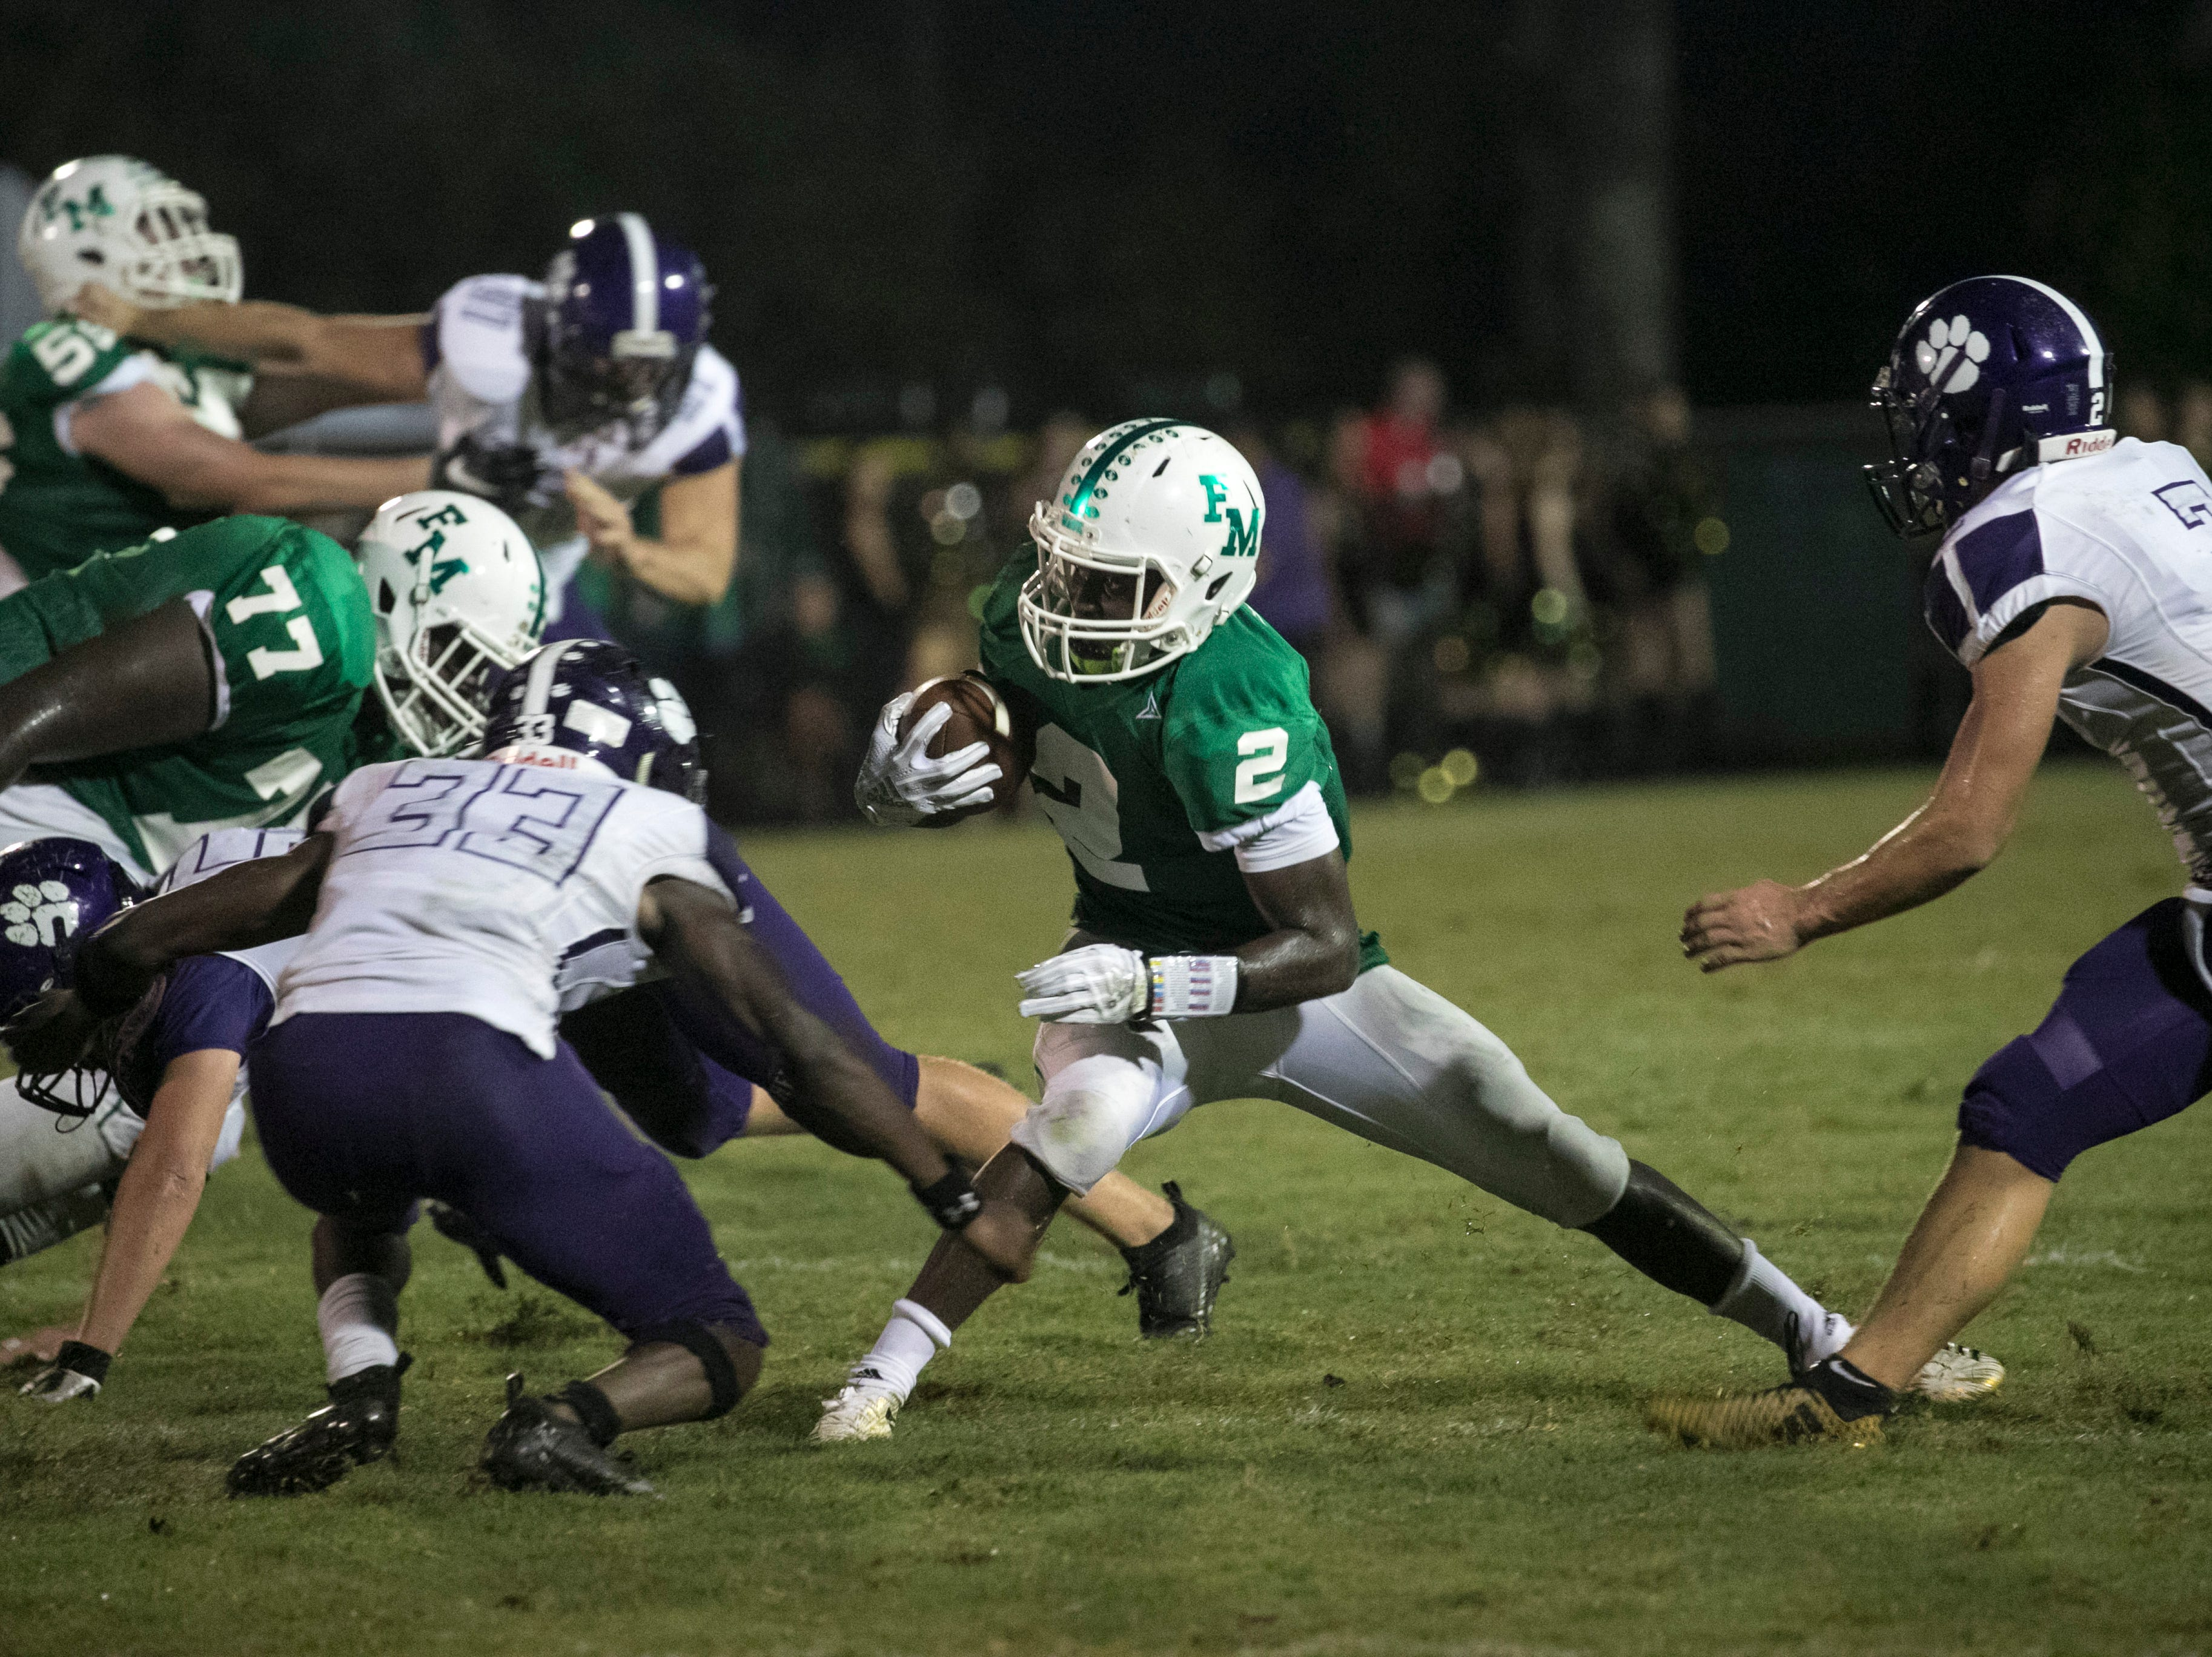 Fort Myers running back Sias Young runs the ball against Cypress Lake on Friday night, September 7, 2018, at Fort Myers High School.